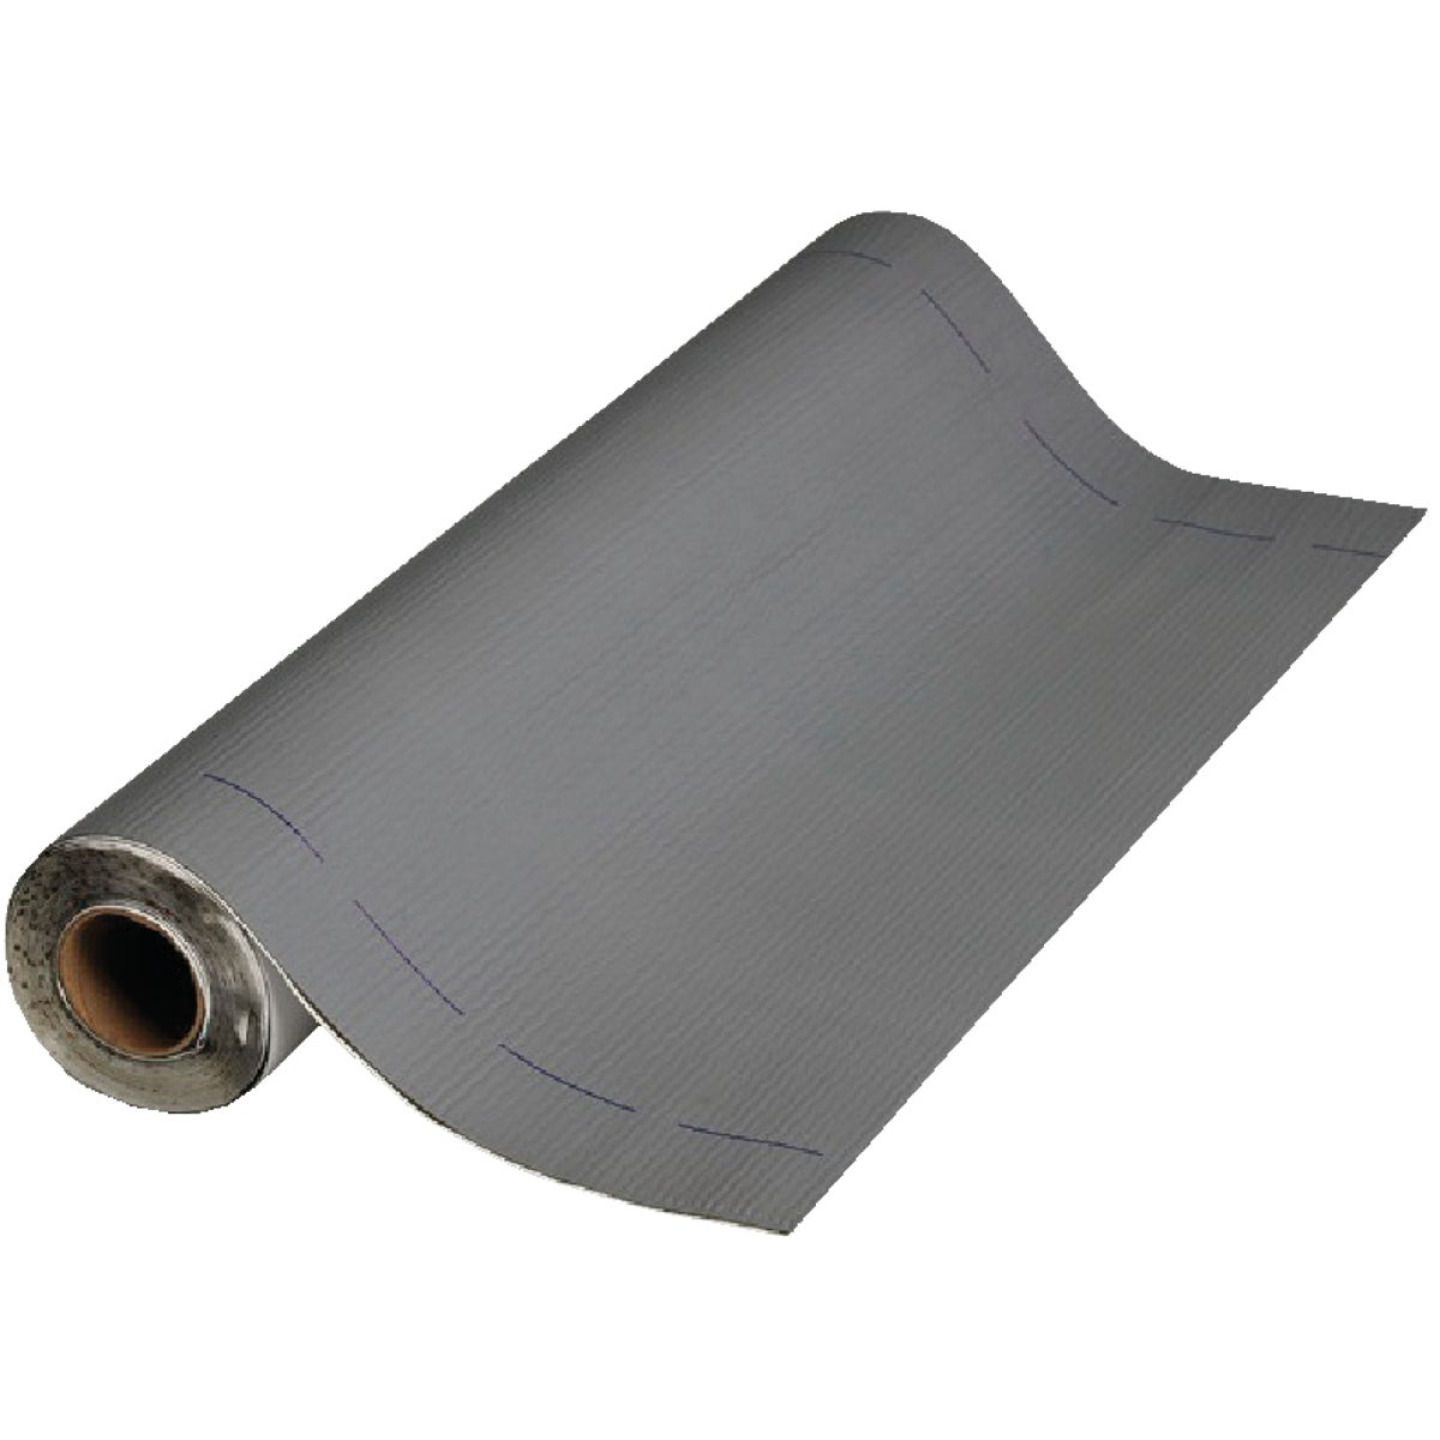 MFM Peel & Seal 36 In. X 33-1/2 Ft. Granite Gray Aluminum Roofing Membrane Image 1